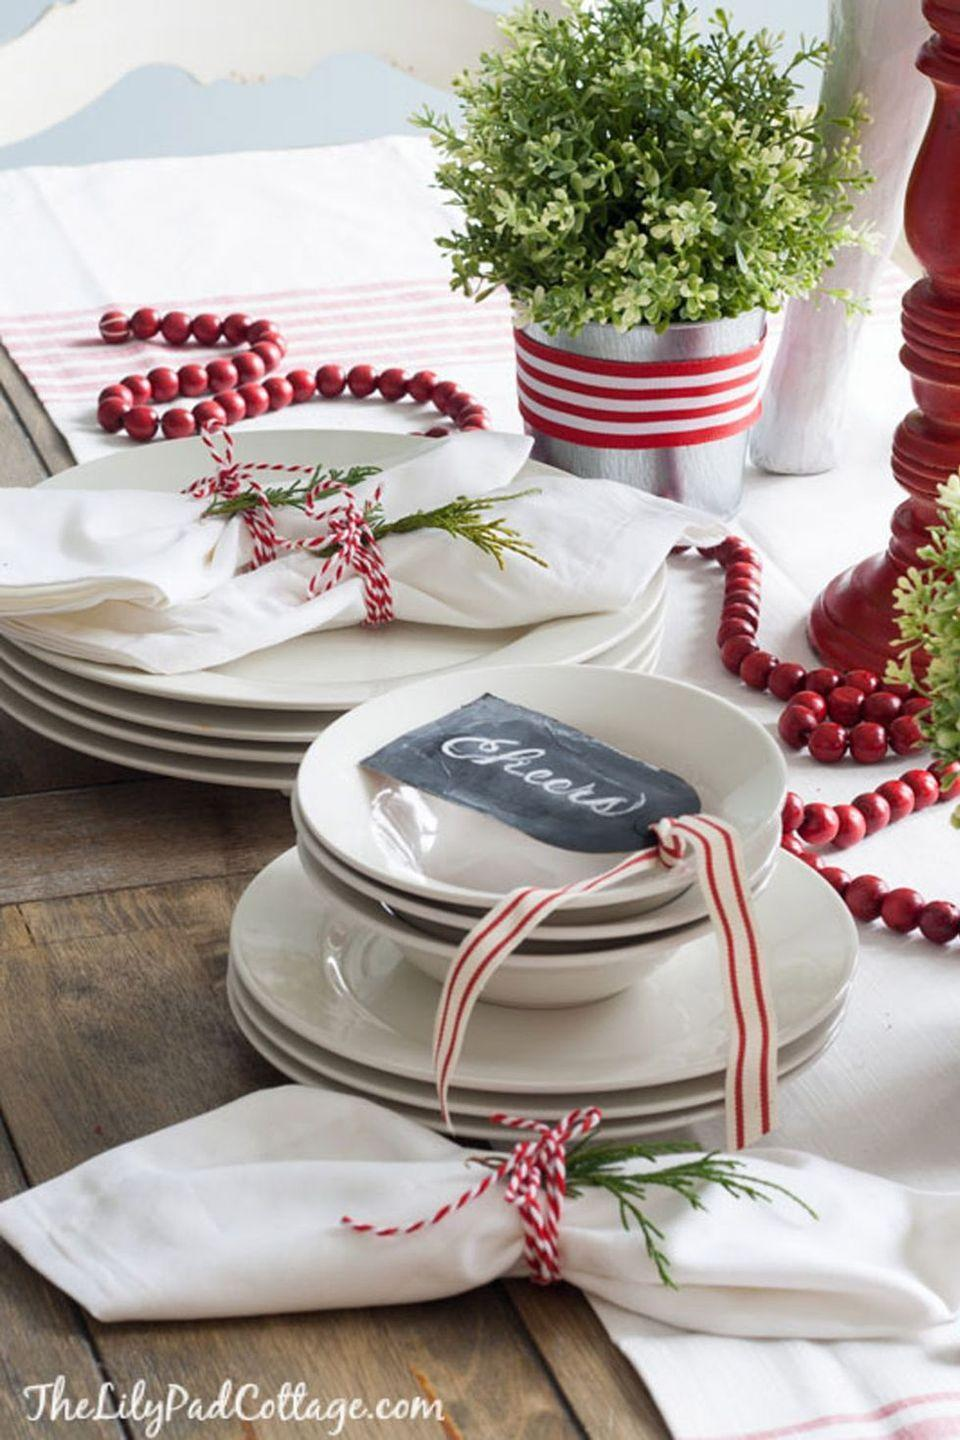 "<p>Keep things simple with a classic red and white theme. Strands of red beads mimic the festive look of cranberries, while a simple grosgrain ribbon dresses up a planter.</p><p><strong>Get the tutorial at <a href=""http://www.thelilypadcottage.com/2014/12/classic-christmas-tour.html"" rel=""nofollow noopener"" target=""_blank"" data-ylk=""slk:The Lily Pad Cottage"" class=""link rapid-noclick-resp"">The Lily Pad Cottage</a>.</strong></p><p><strong><a class=""link rapid-noclick-resp"" href=""https://www.amazon.com/Grosgrain-Accessories-Scrapbooking-Packaging-Decoration/dp/B07LC8WRPP?tag=syn-yahoo-20&ascsubtag=%5Bartid%7C10050.g.644%5Bsrc%7Cyahoo-us"" rel=""nofollow noopener"" target=""_blank"" data-ylk=""slk:SHOP RED AND WHITE RIBBON"">SHOP RED AND WHITE RIBBON</a><br></strong></p>"